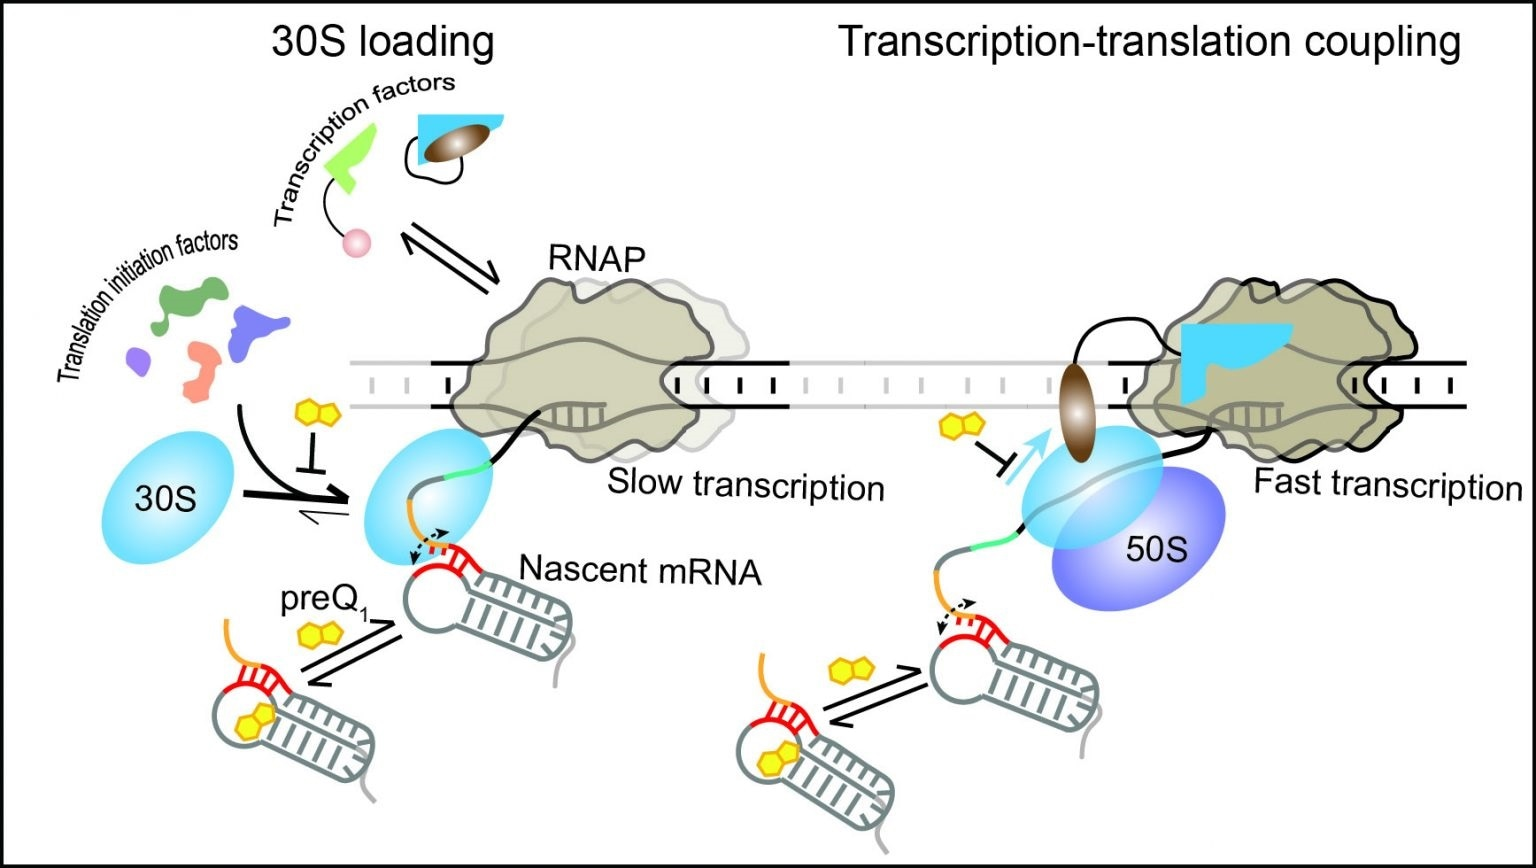 Study reveals RNA regulatory mechanisms within transcription-translation couplings